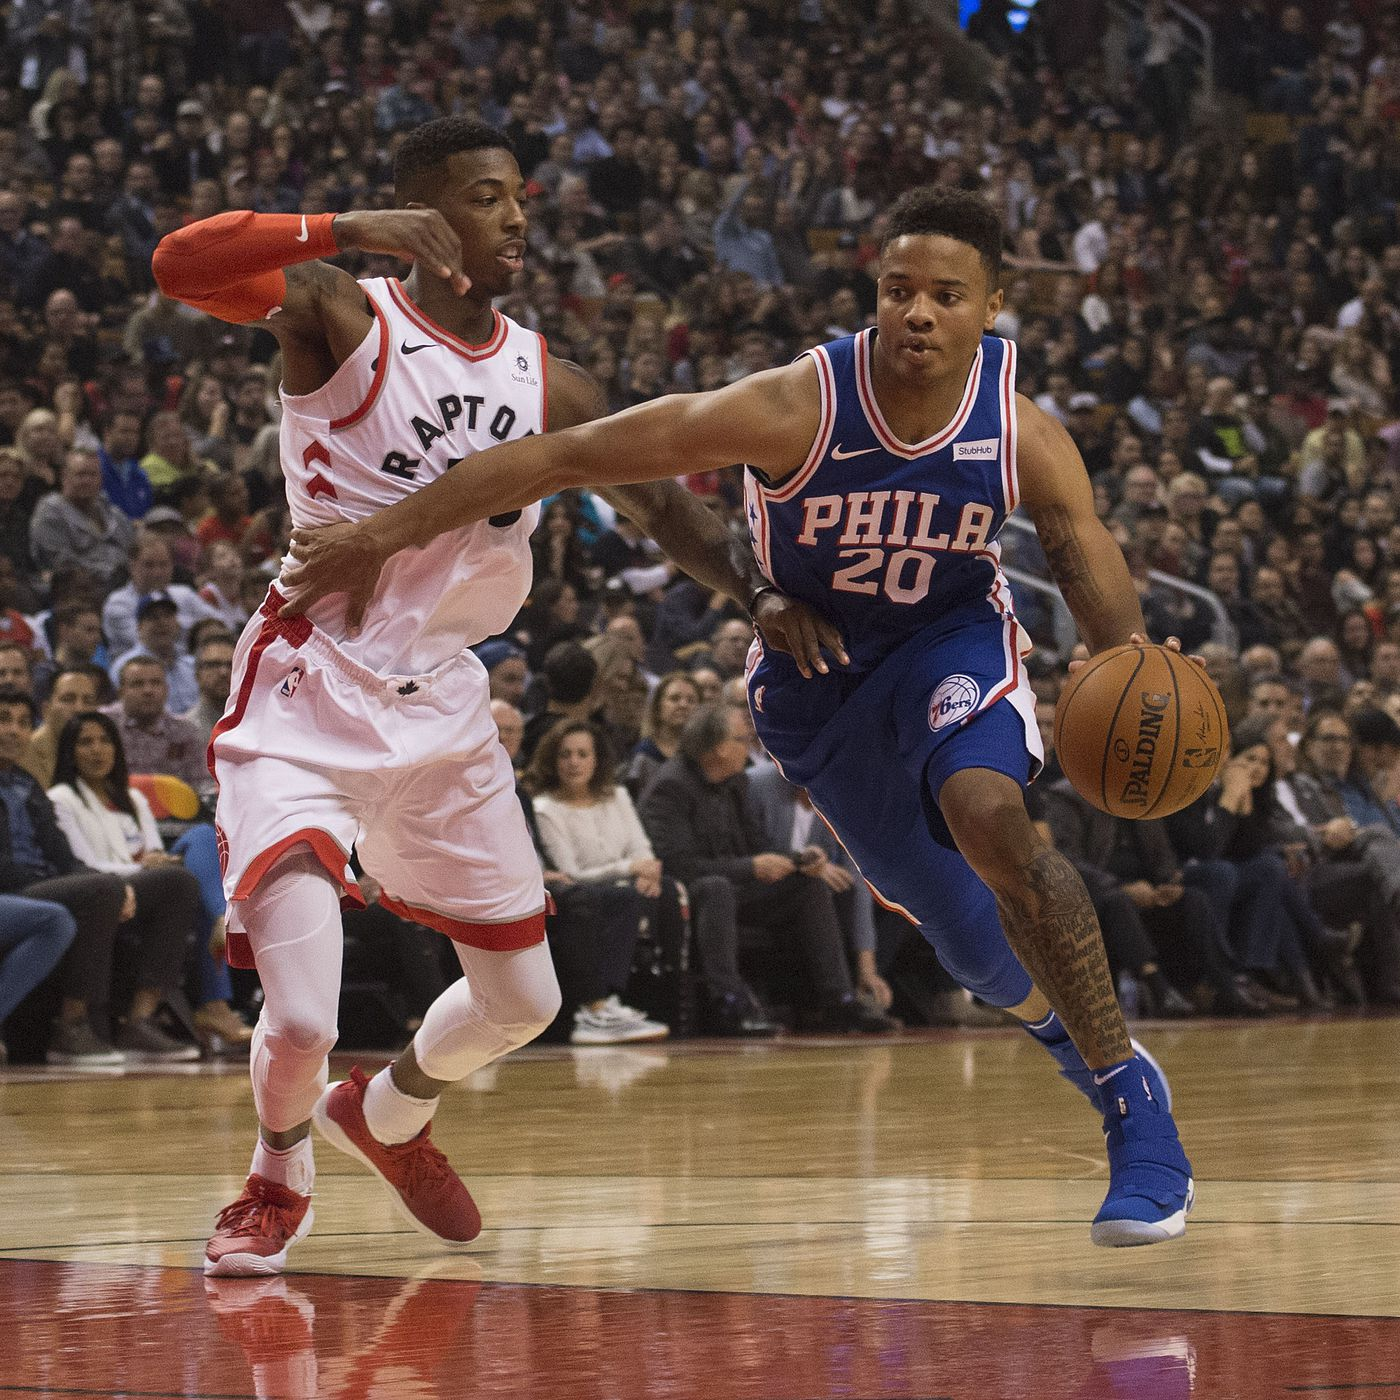 691862bcd45 NBA Trade Ideas: Markelle Fultz is a distressed asset, should the ...